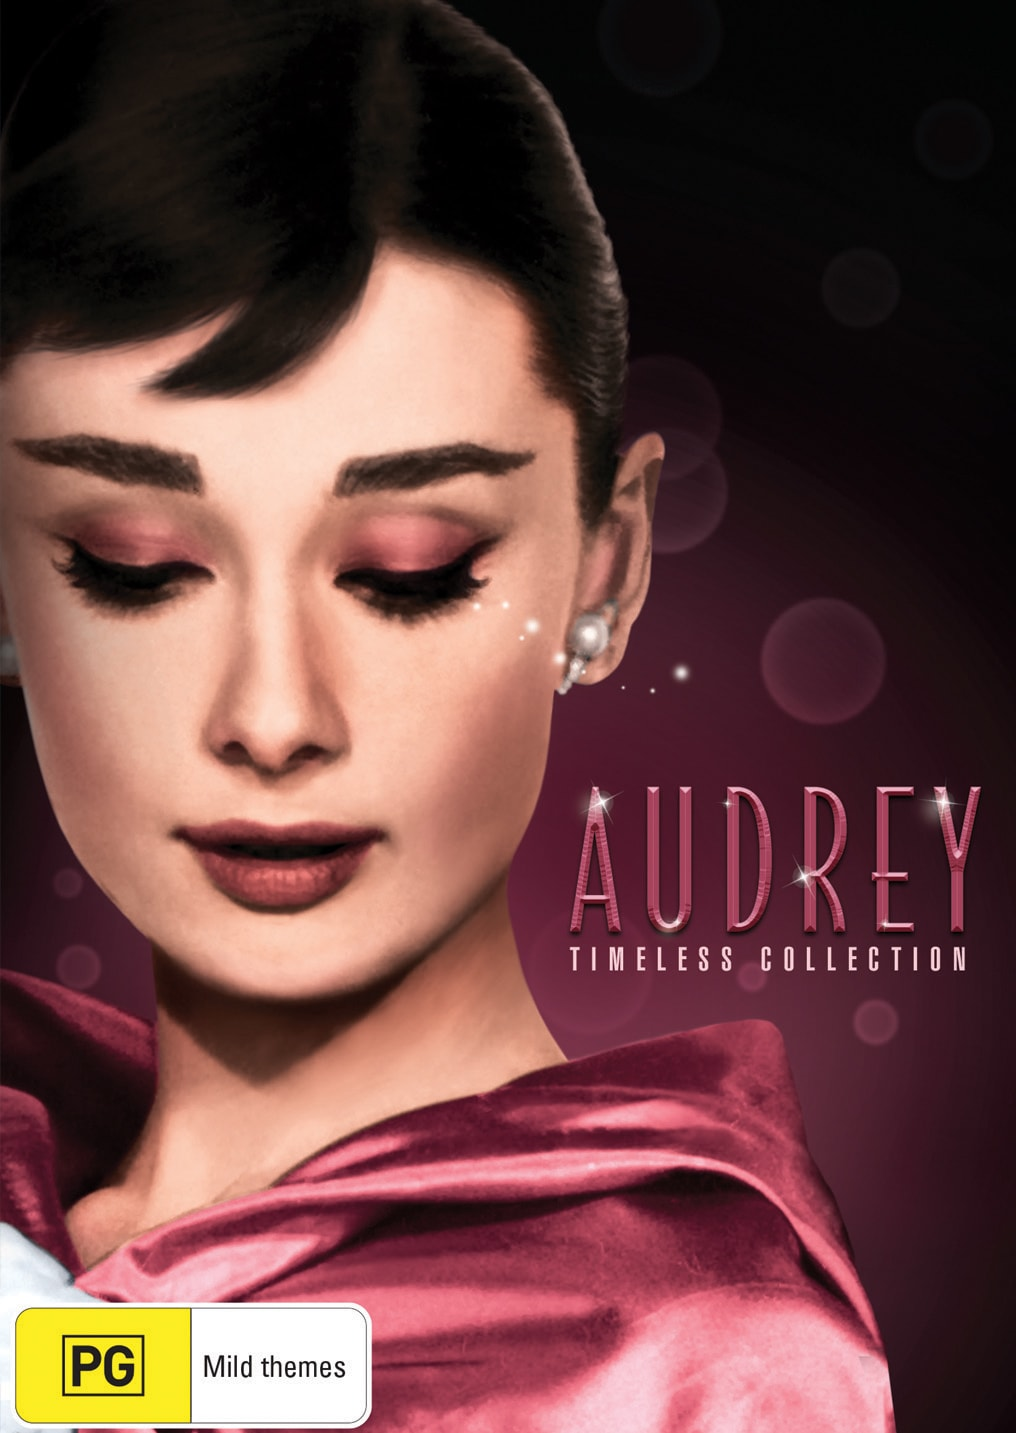 Audrey Hepburn Timeless Collection (Box Set) [DVD]